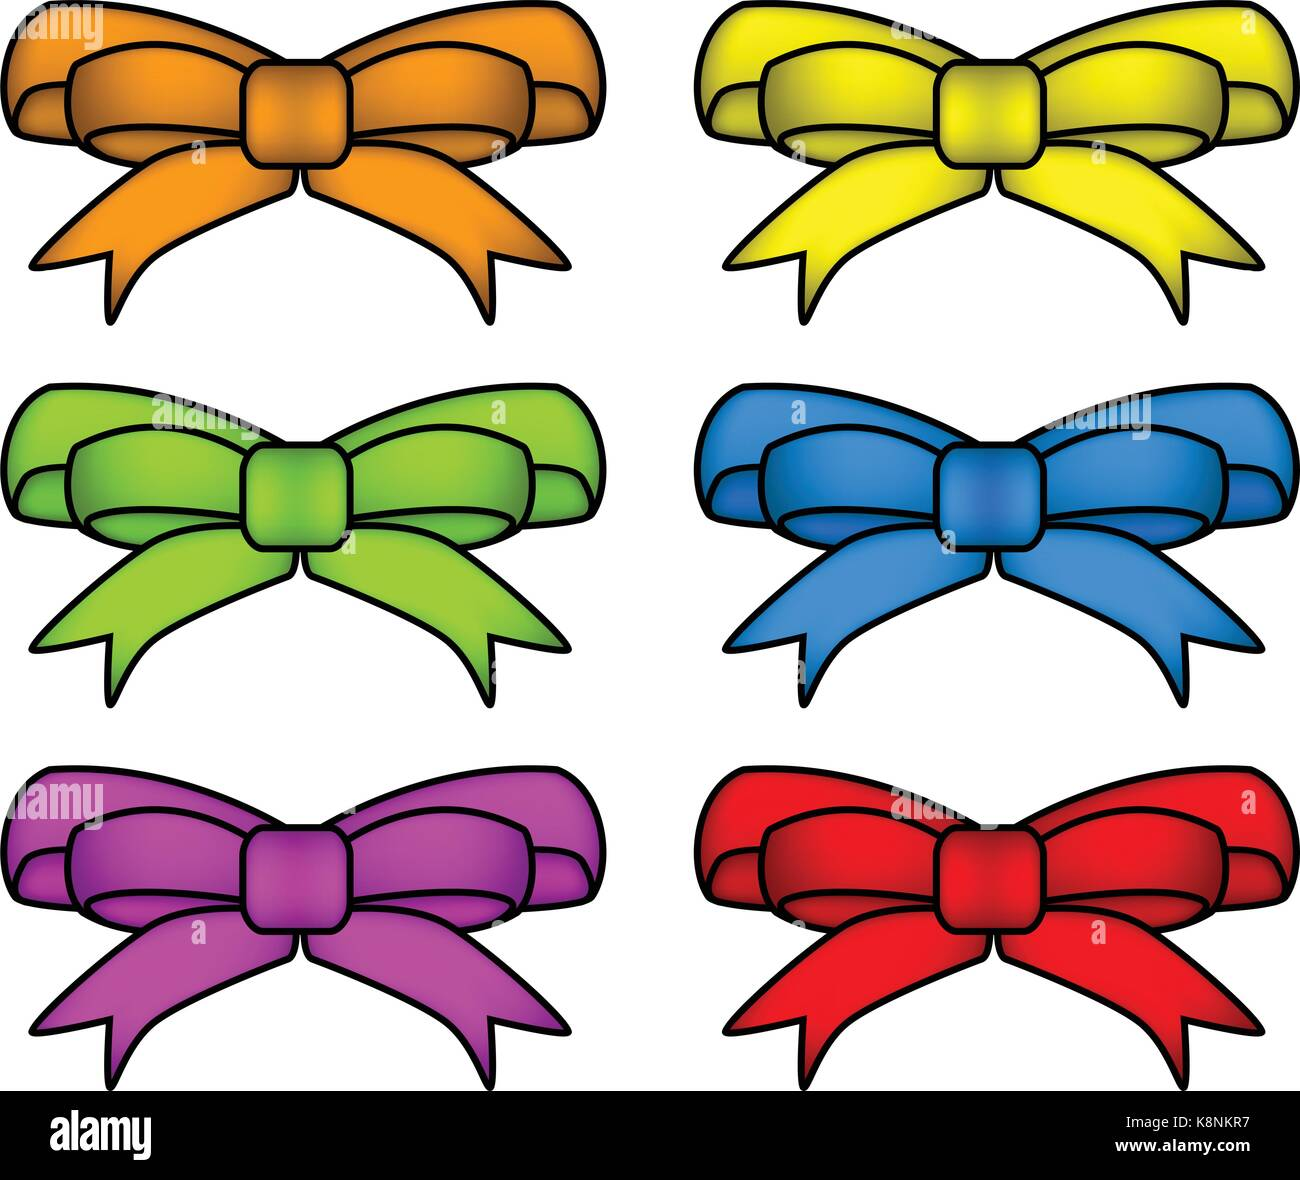 ribbon bow set for christmas present symbol design. Vector illustration isolated on white background. - Stock Vector